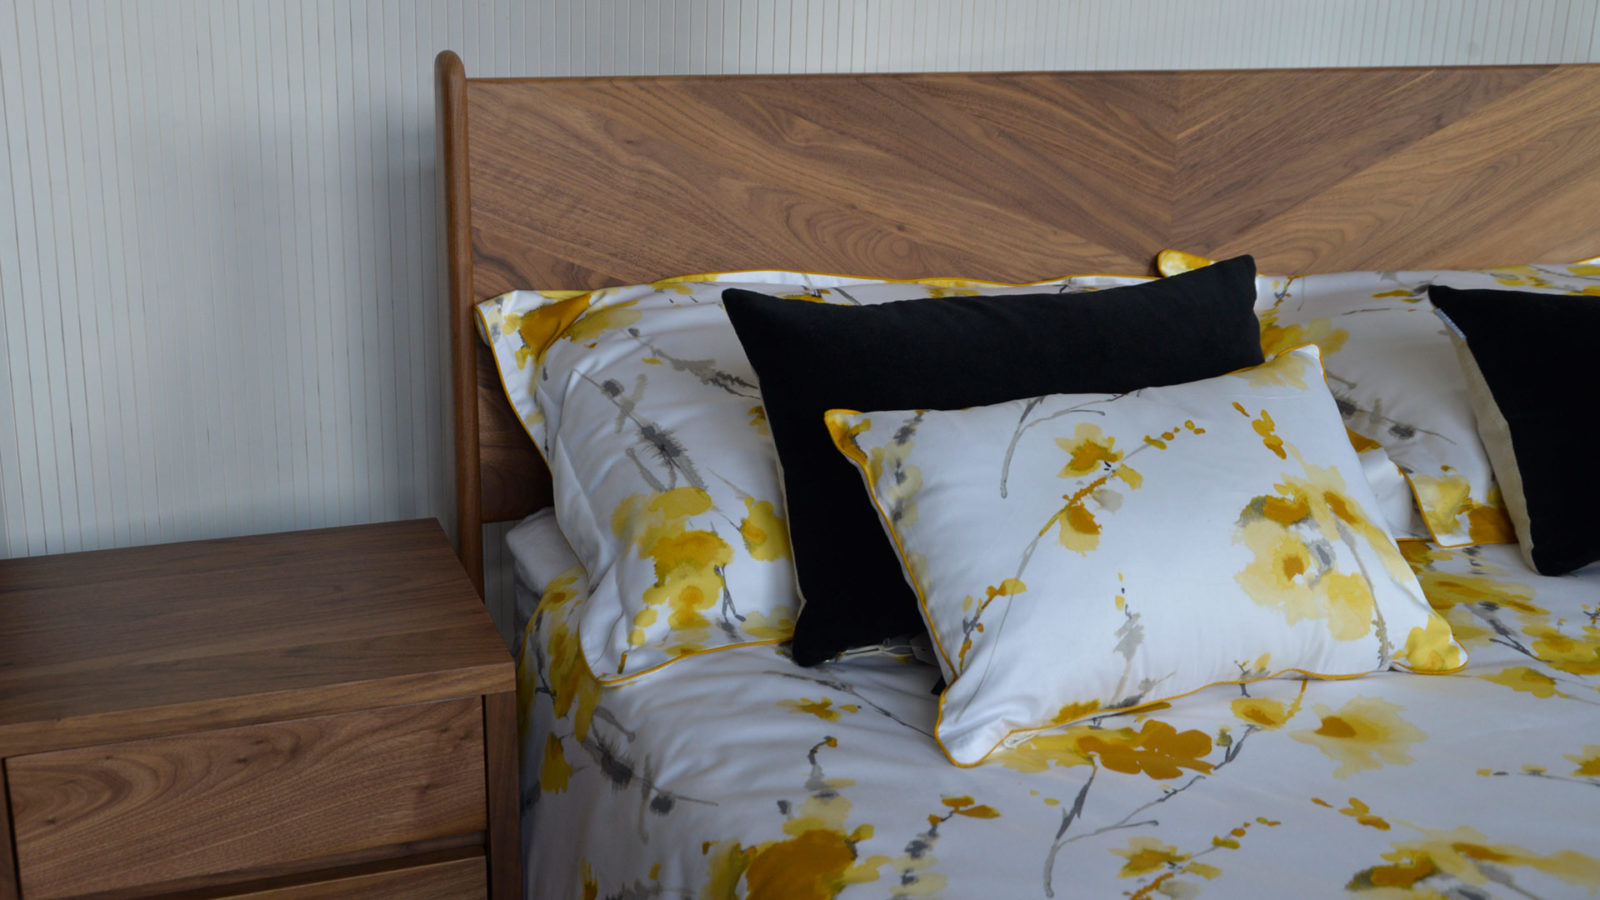 watercolour-floral-print-ochre-flowers-in-duvet-set-and-cushion